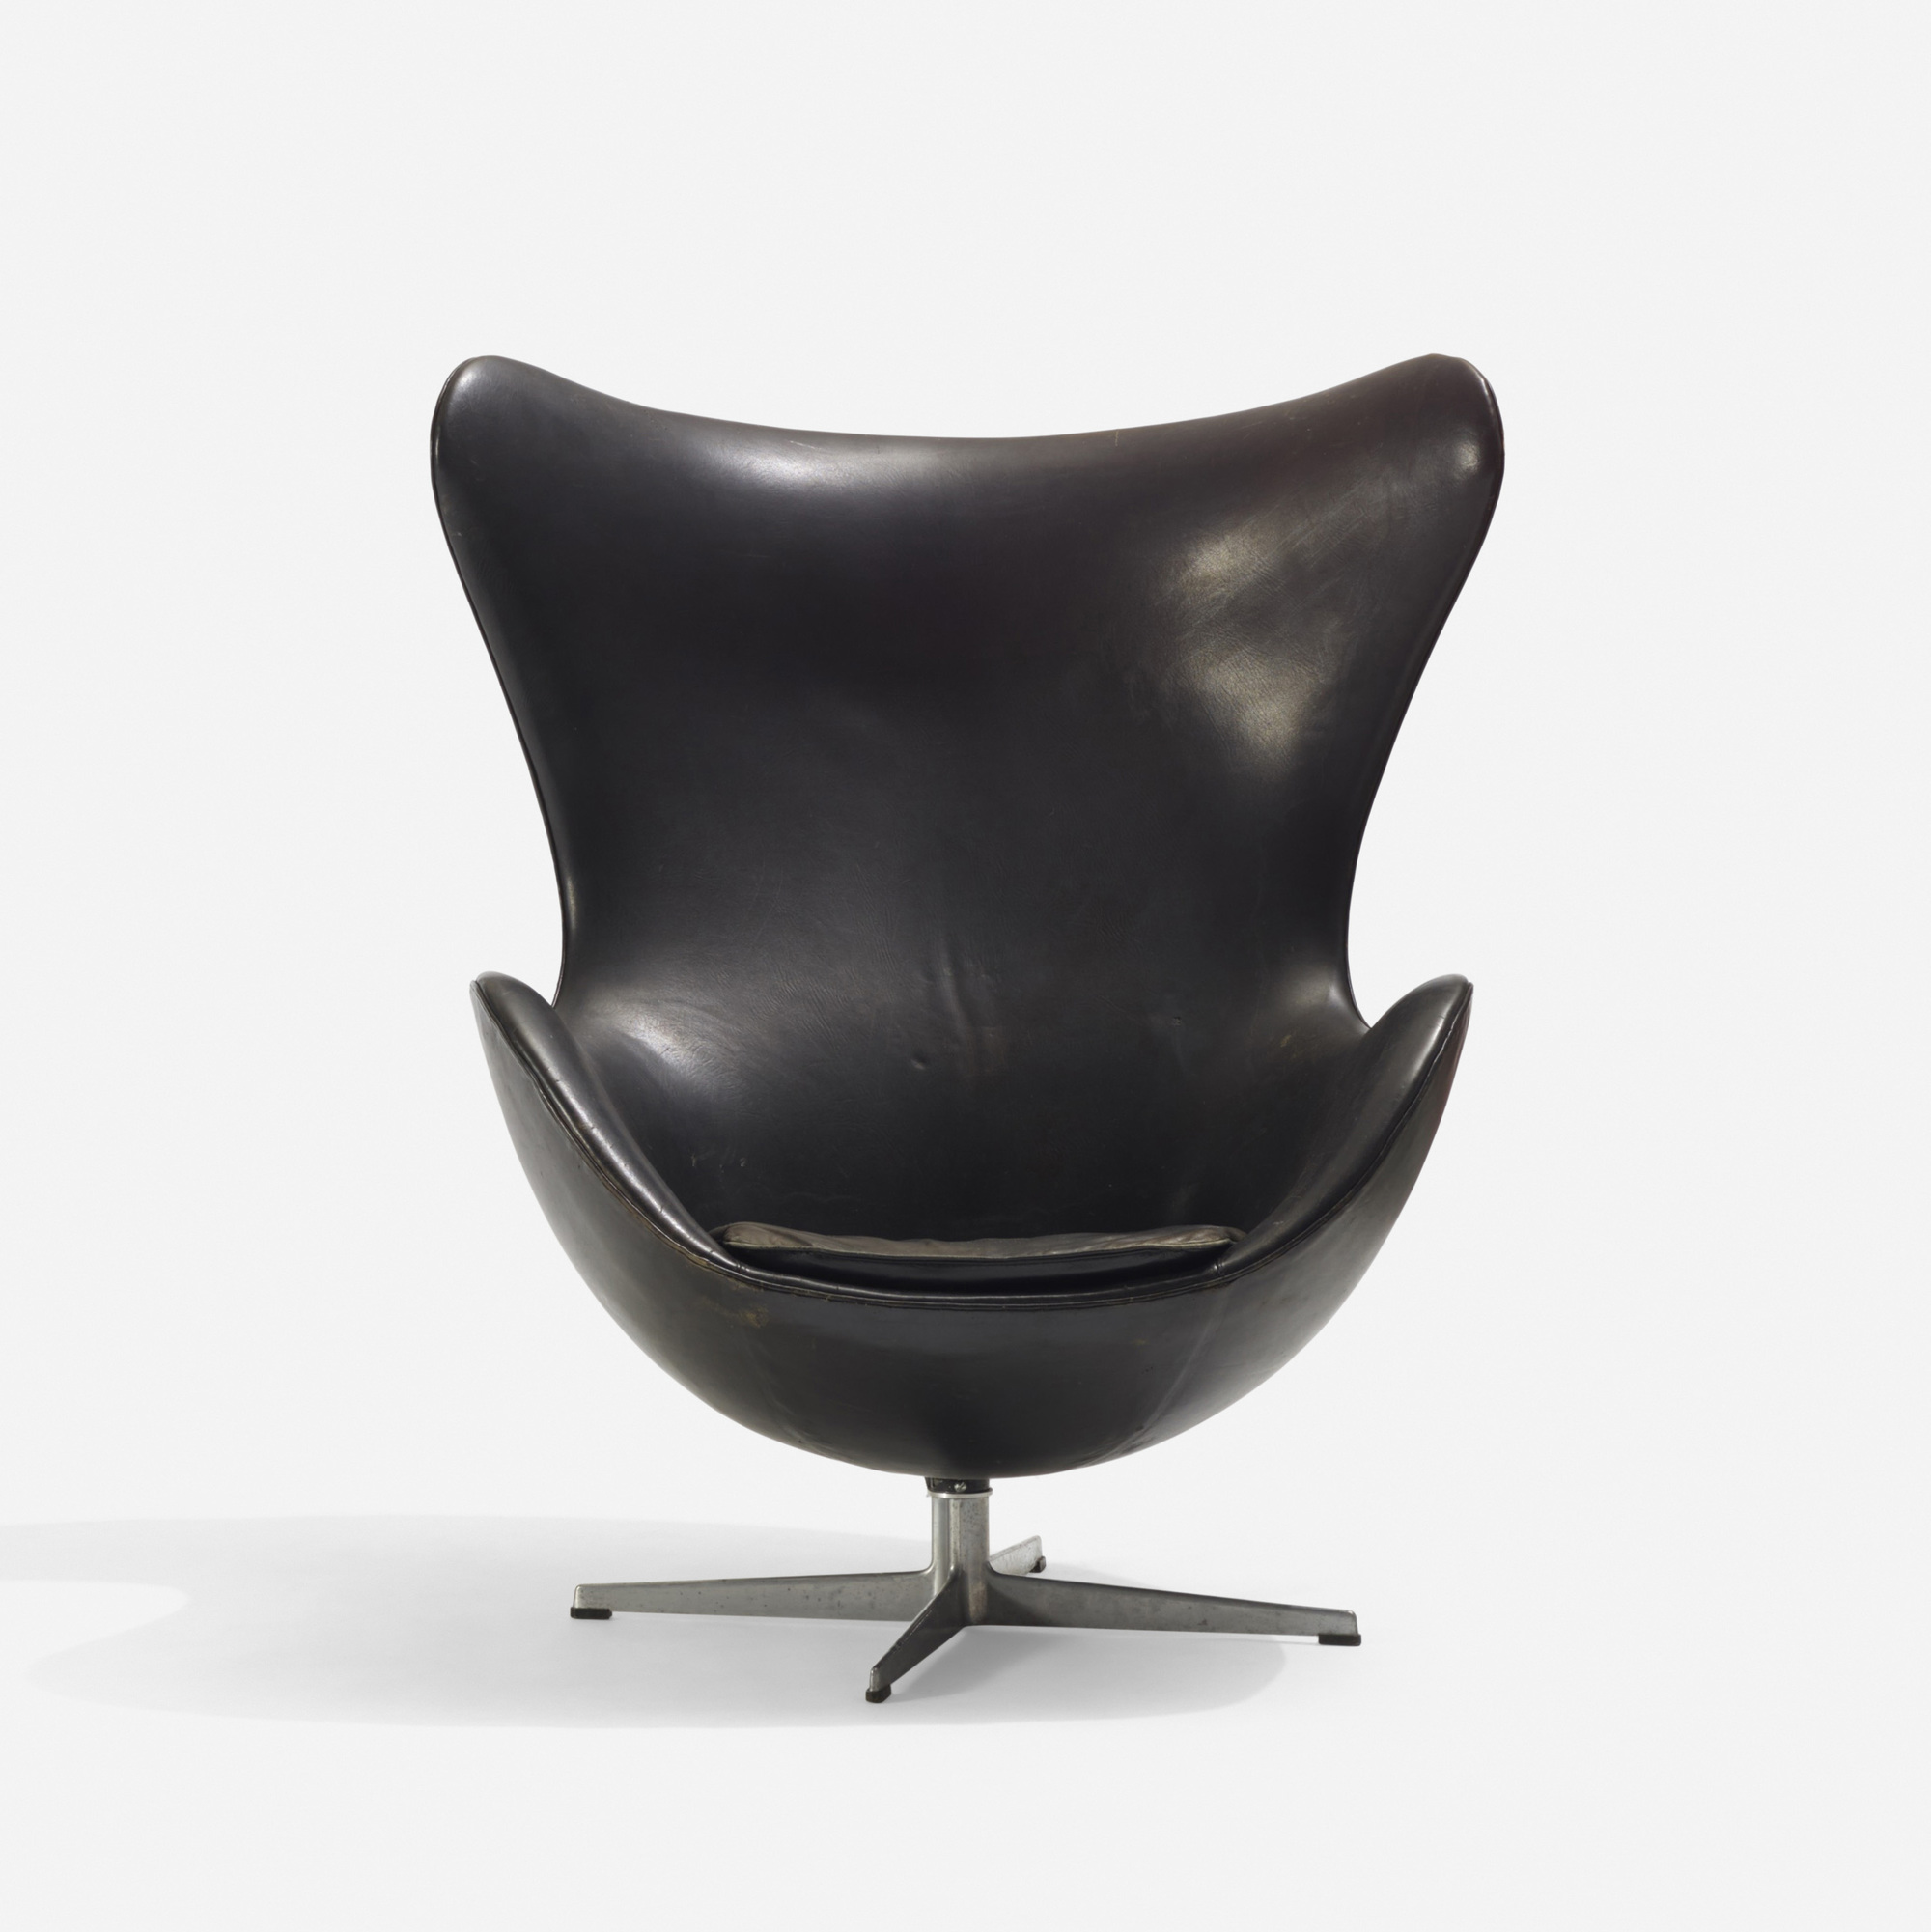 110: Arne Jacobsen / Egg chair (2 of 2)